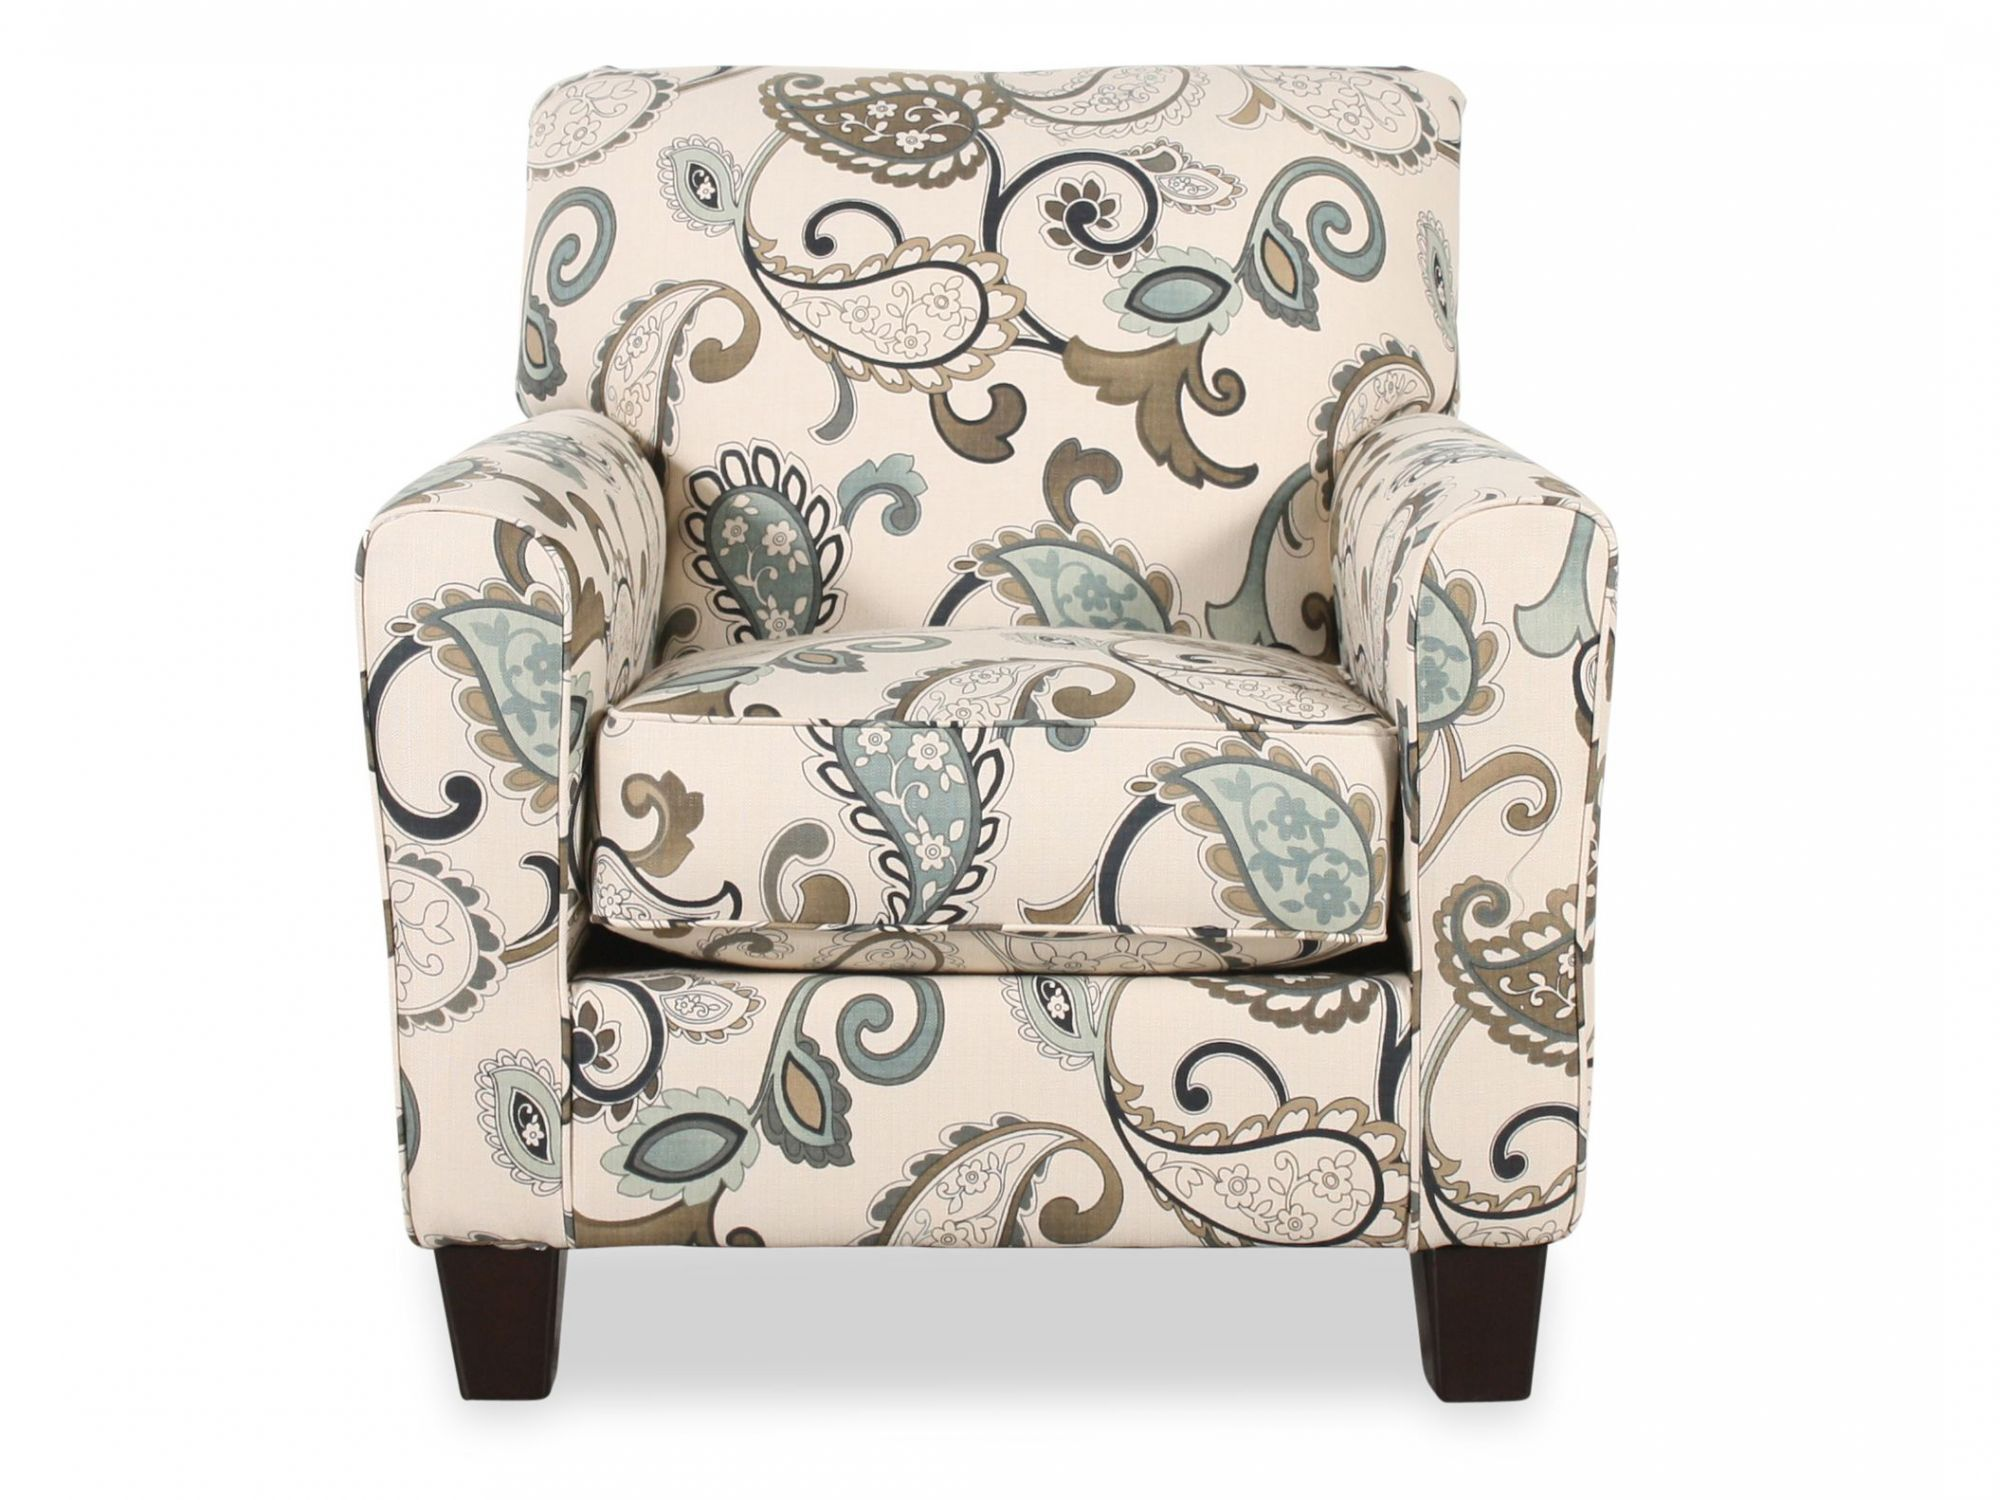 Images Paisley Patterned Contemporary 35u0026quot; Accent Chair In Cream Paisley  Patterned Contemporary 35u0026quot; Accent Chair In Cream